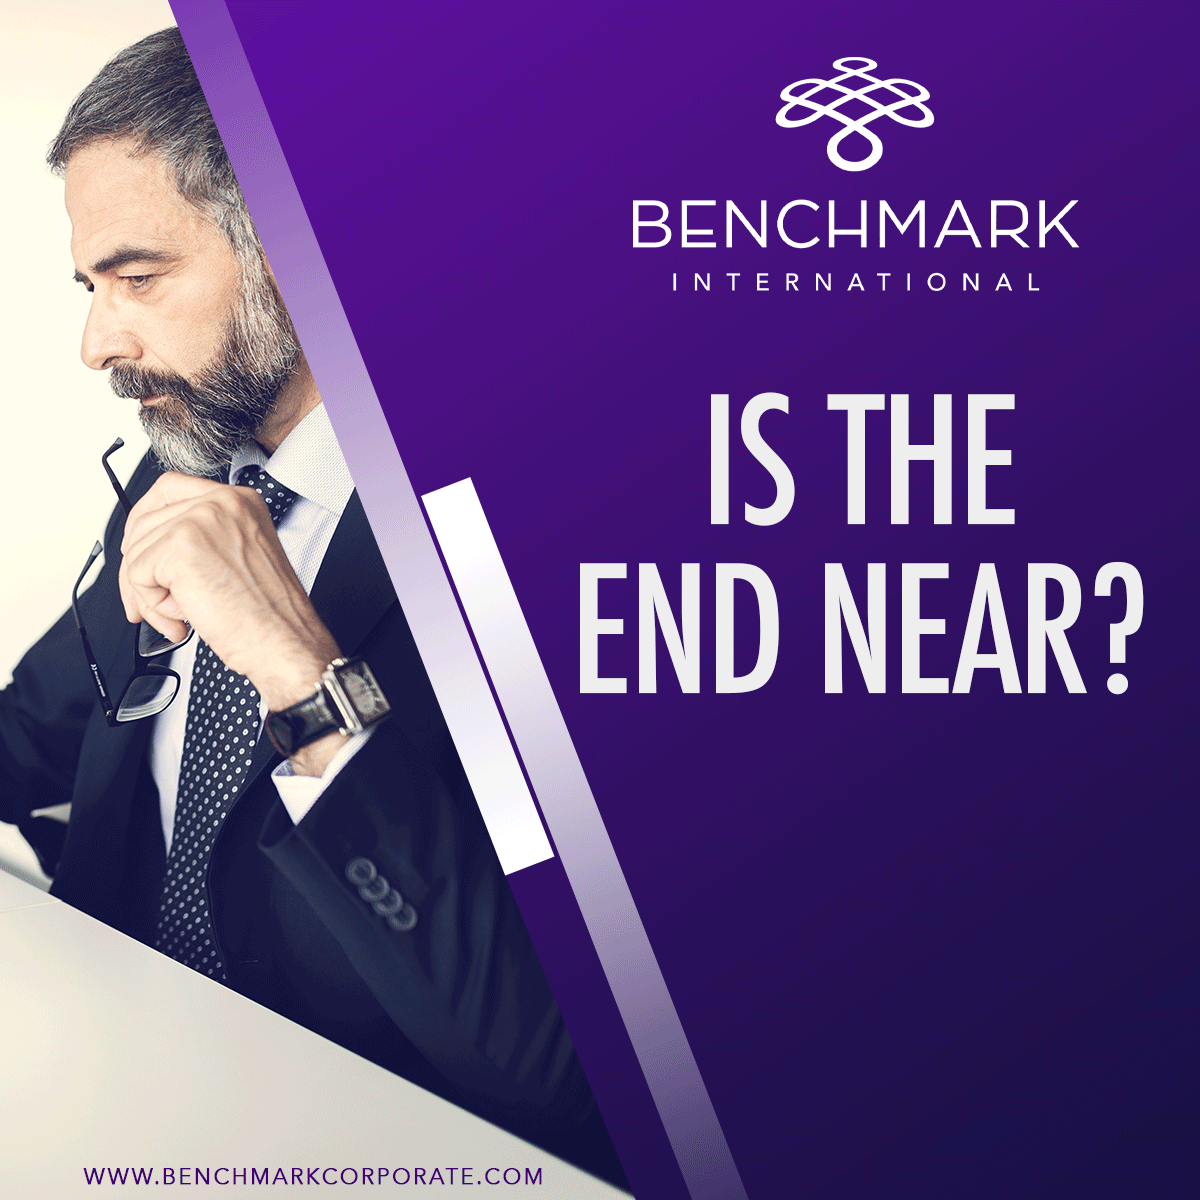 Benchmark-International--Is-the-end-near_Social